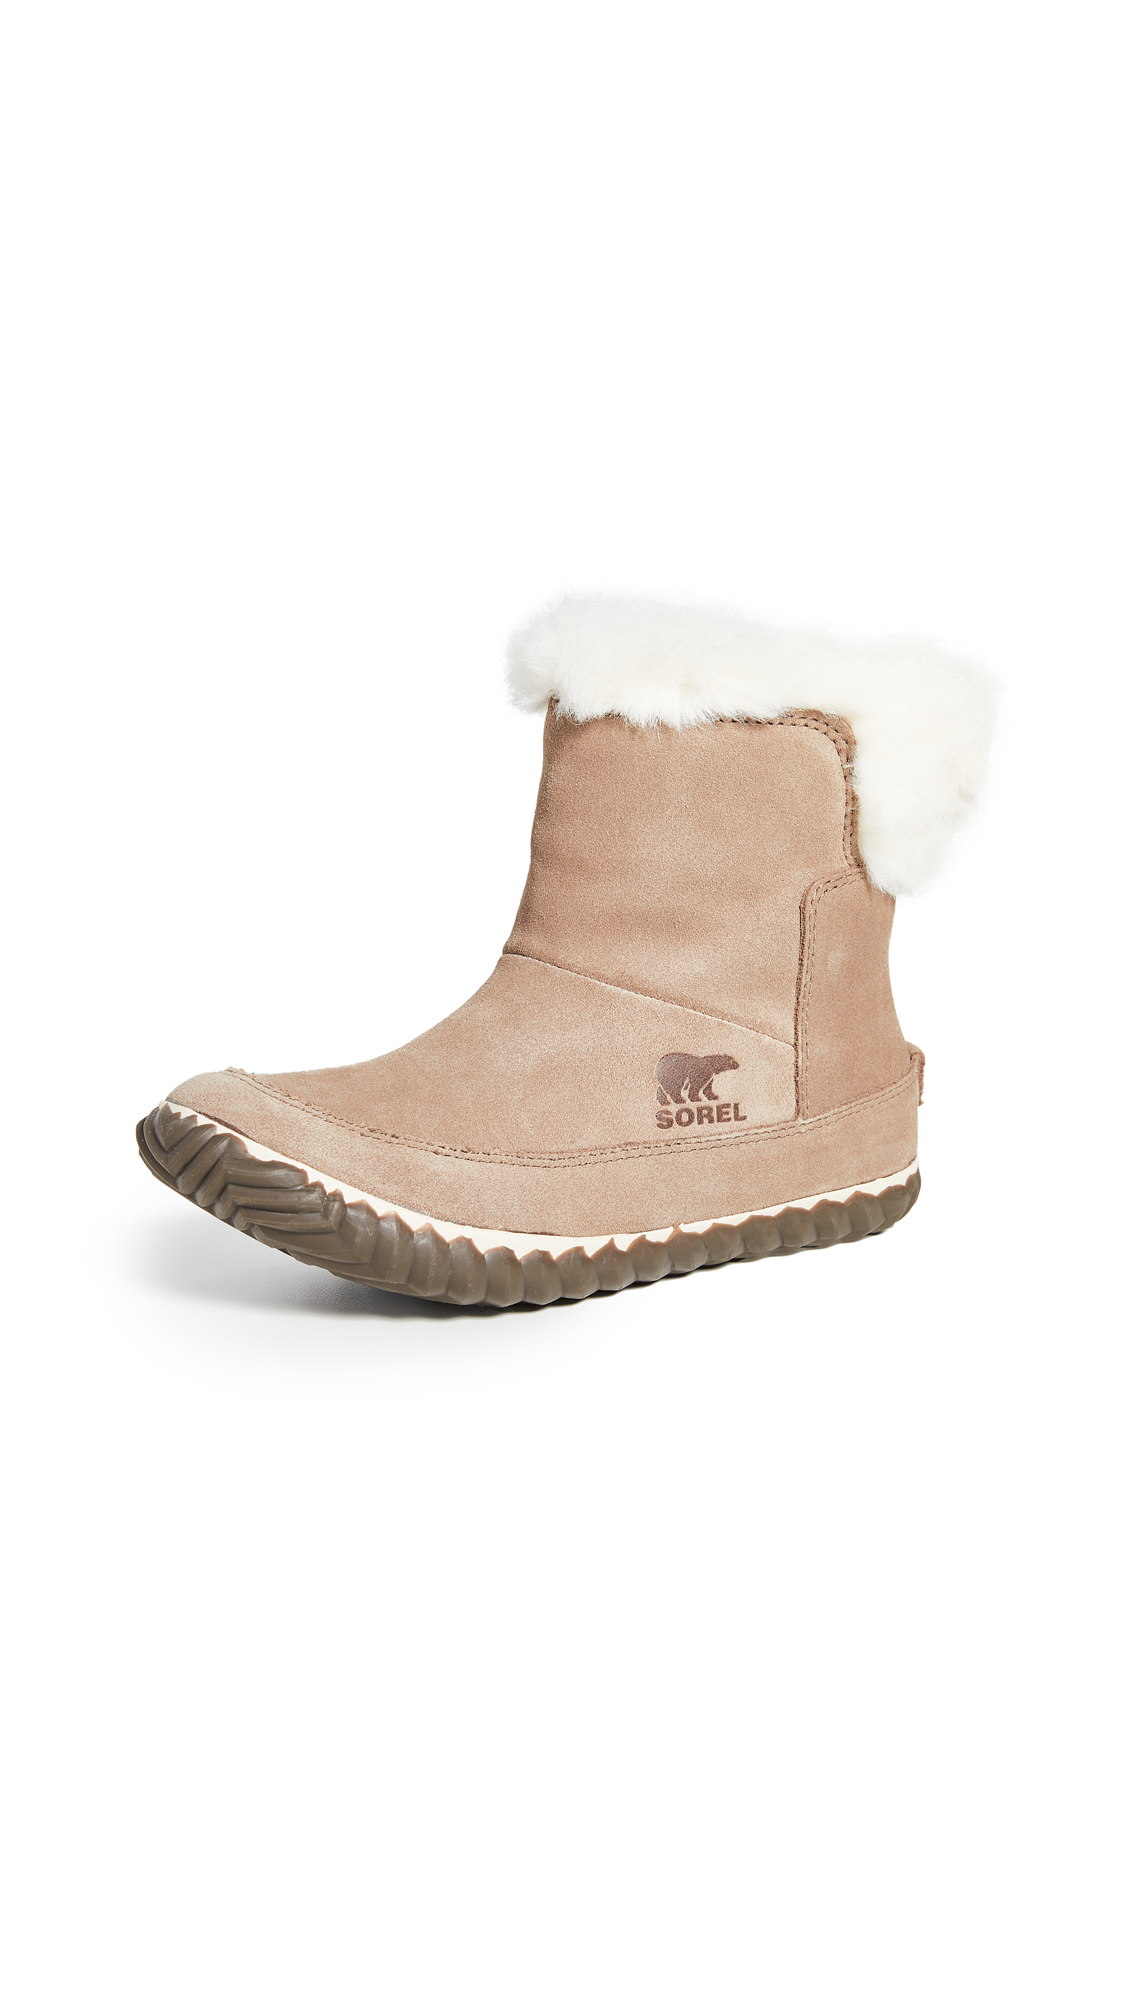 Buy Sorel Out 'N About Slipper Booties online, shop Sorel